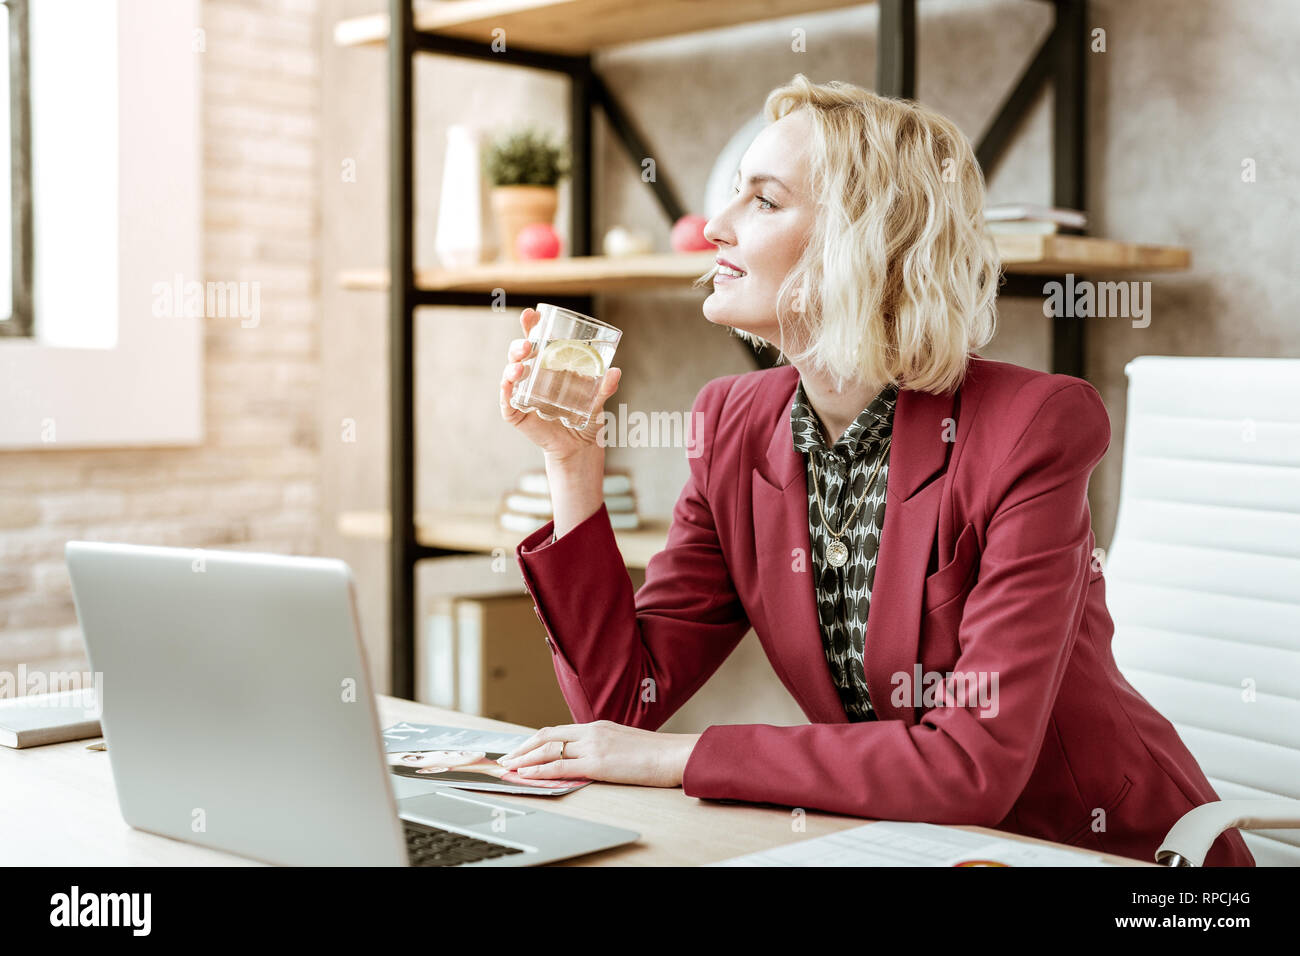 Curious appealing lady with wide smile quenching thirst with water - Stock Image